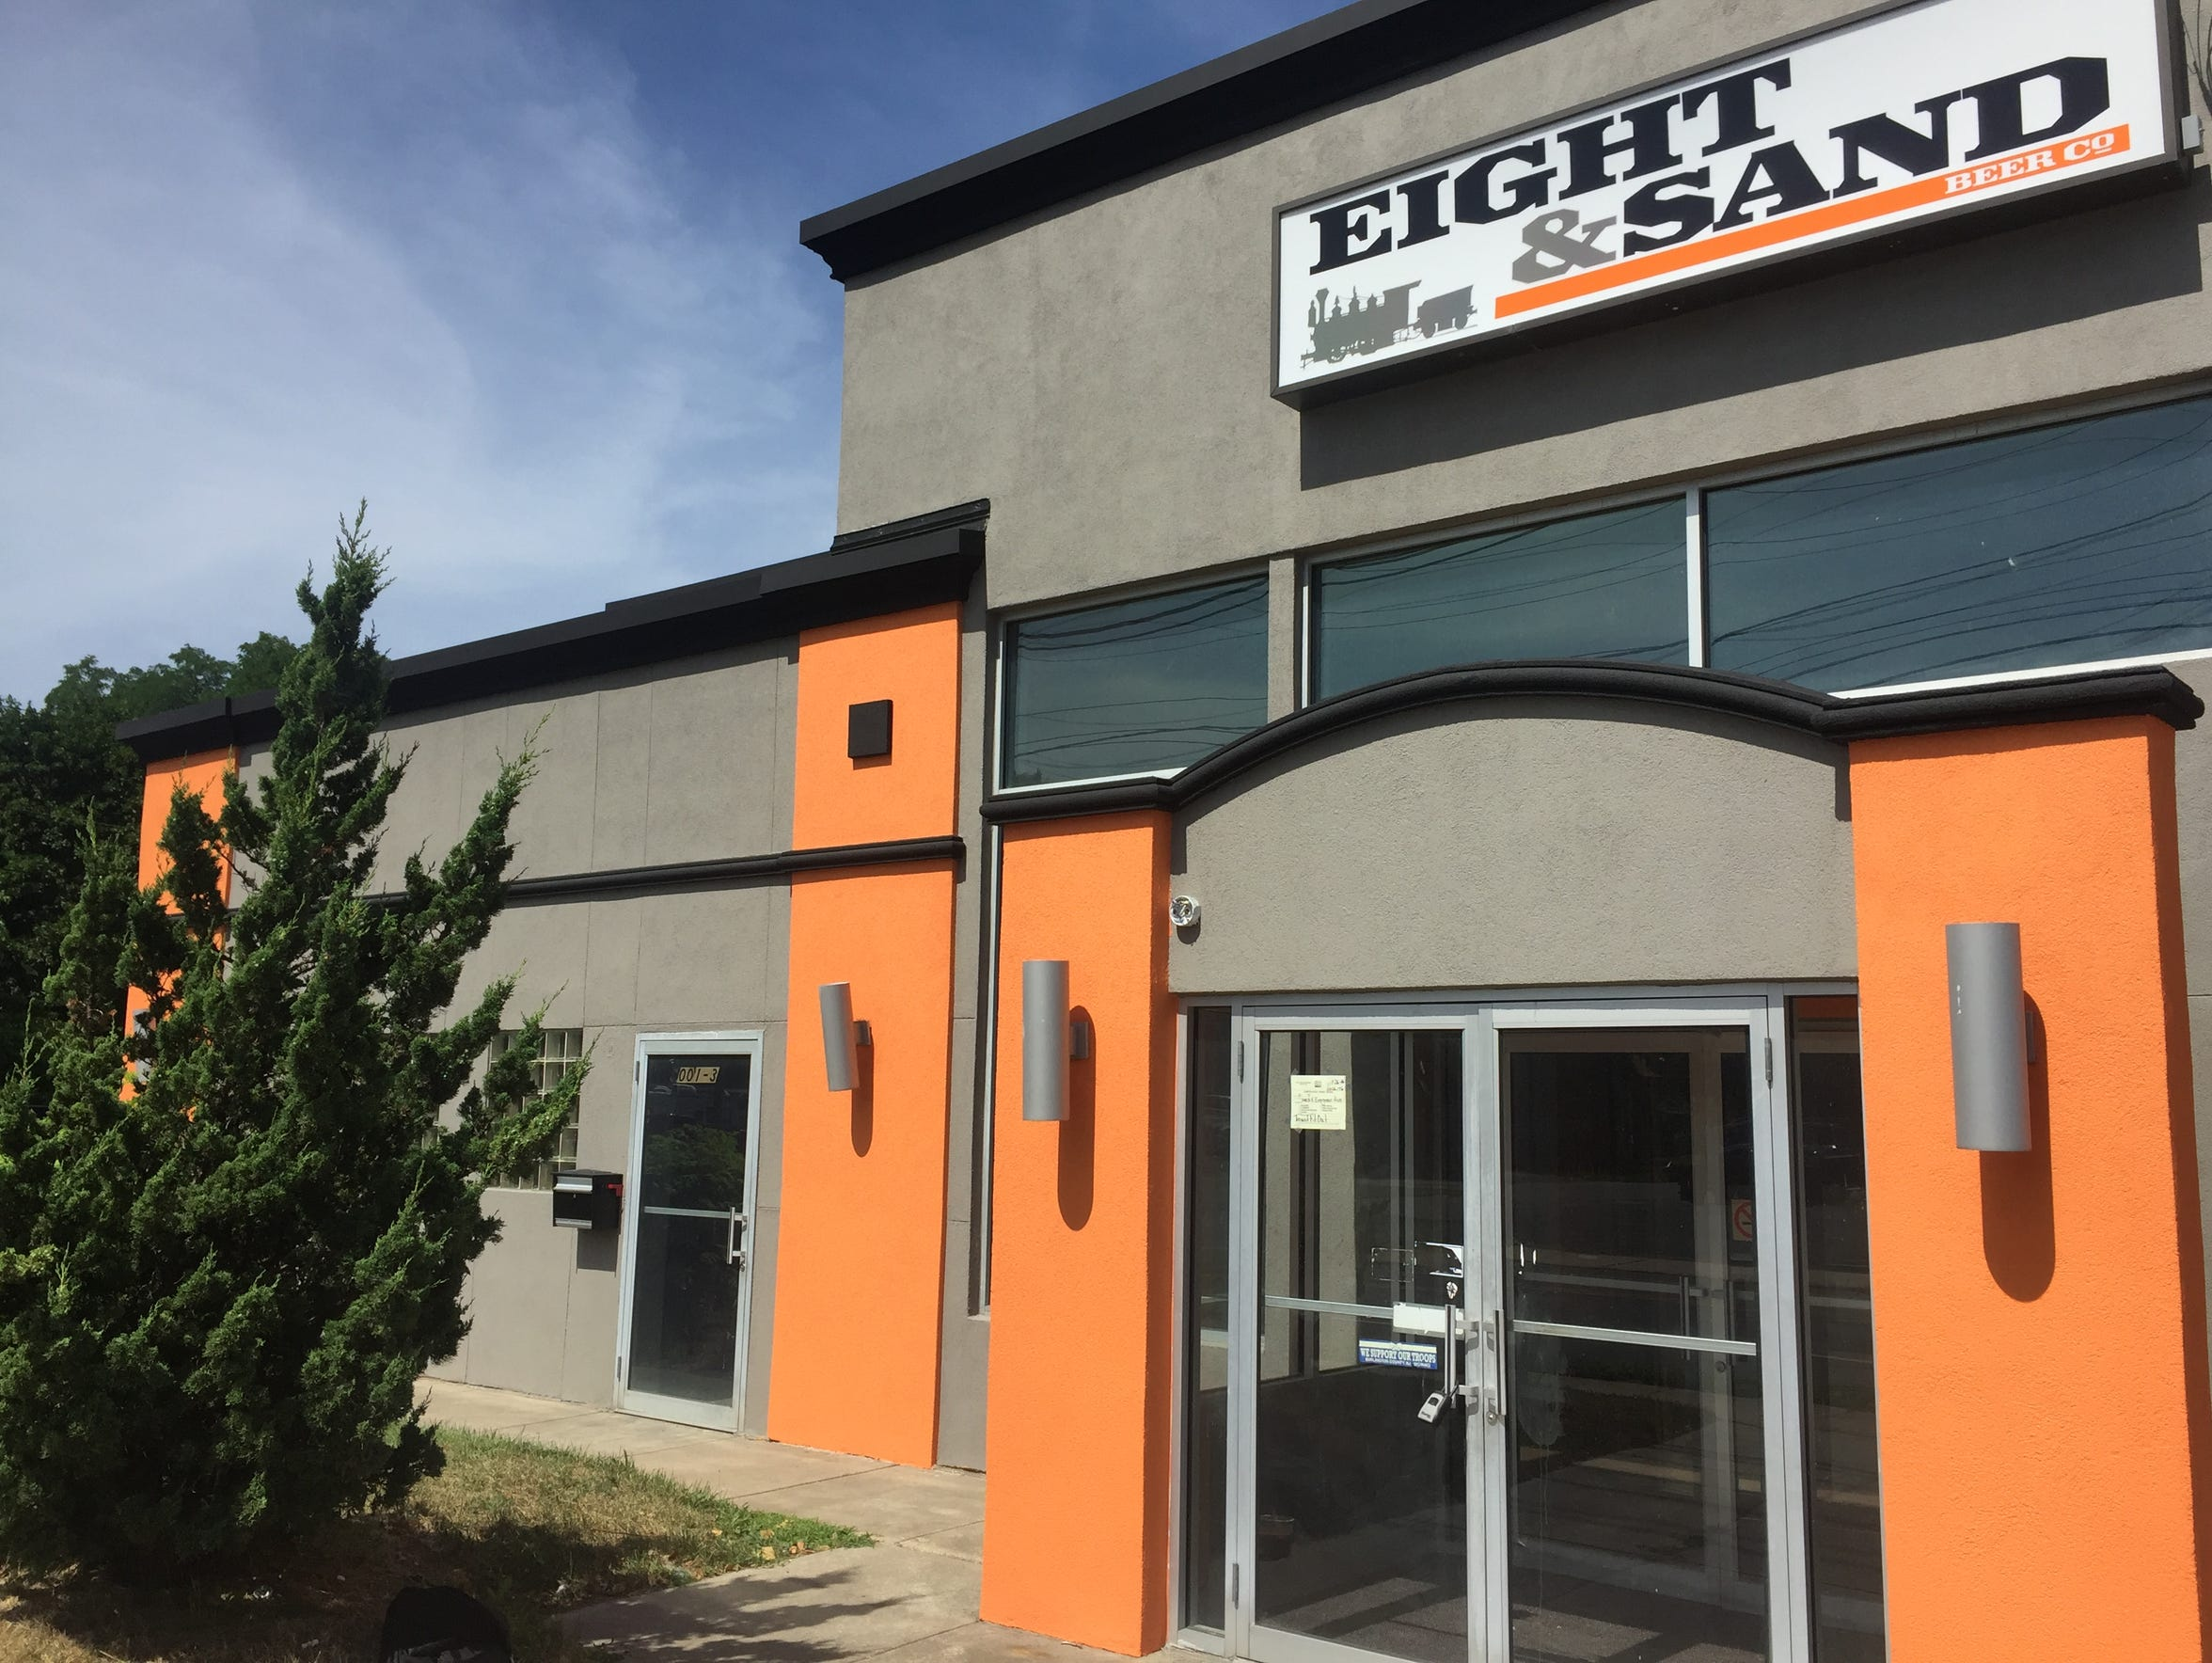 Eight & Sand in Woodbury is located in a former pasta company headquarters in Woodbury. The brewery will be on site at LOT 323 this summer.